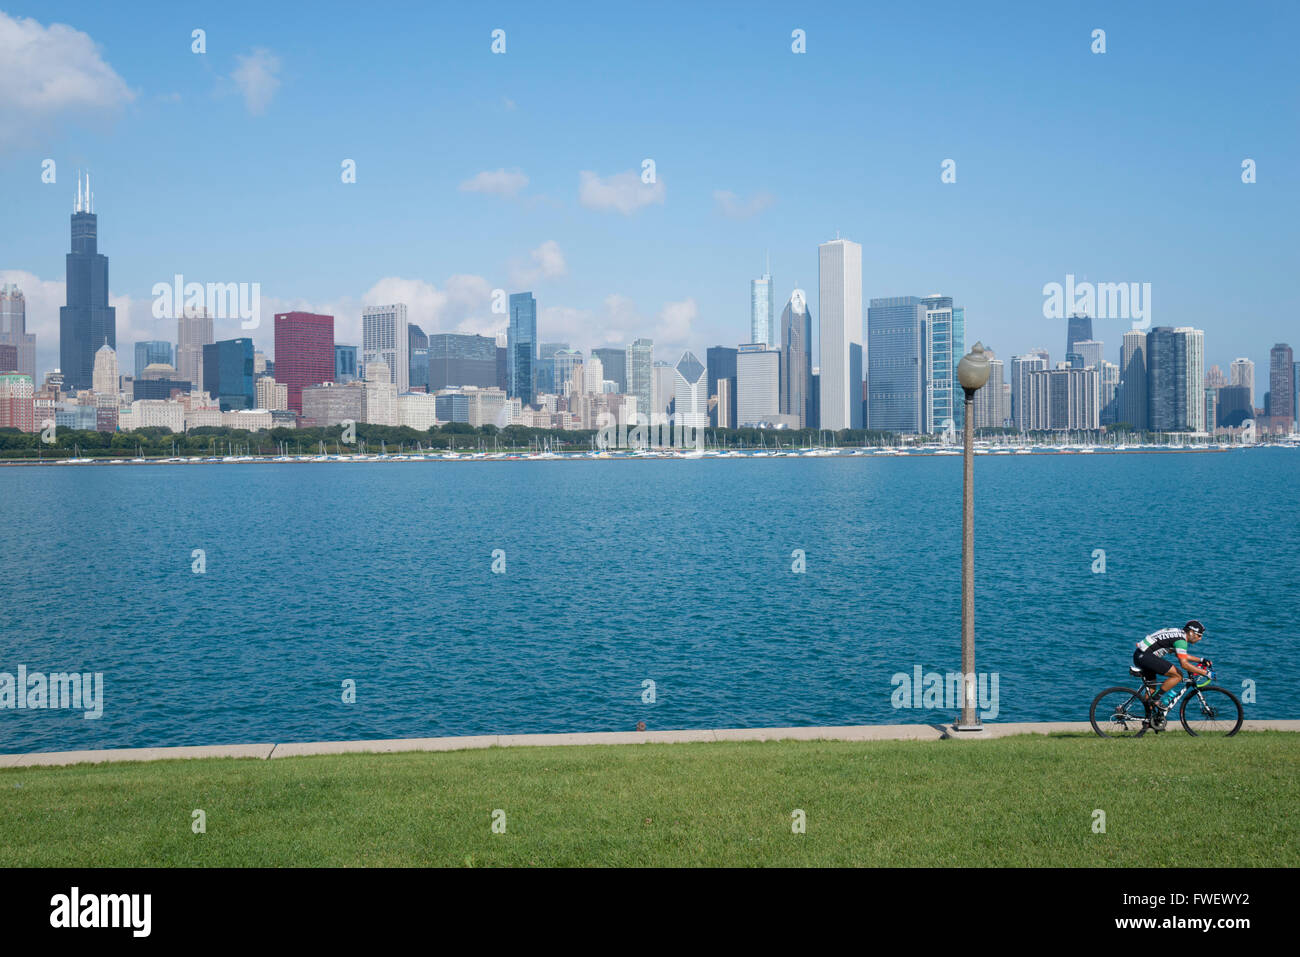 Chicago skyline from the Planetarium, Lake Michigan, Illinois, United States of America, North America - Stock Image